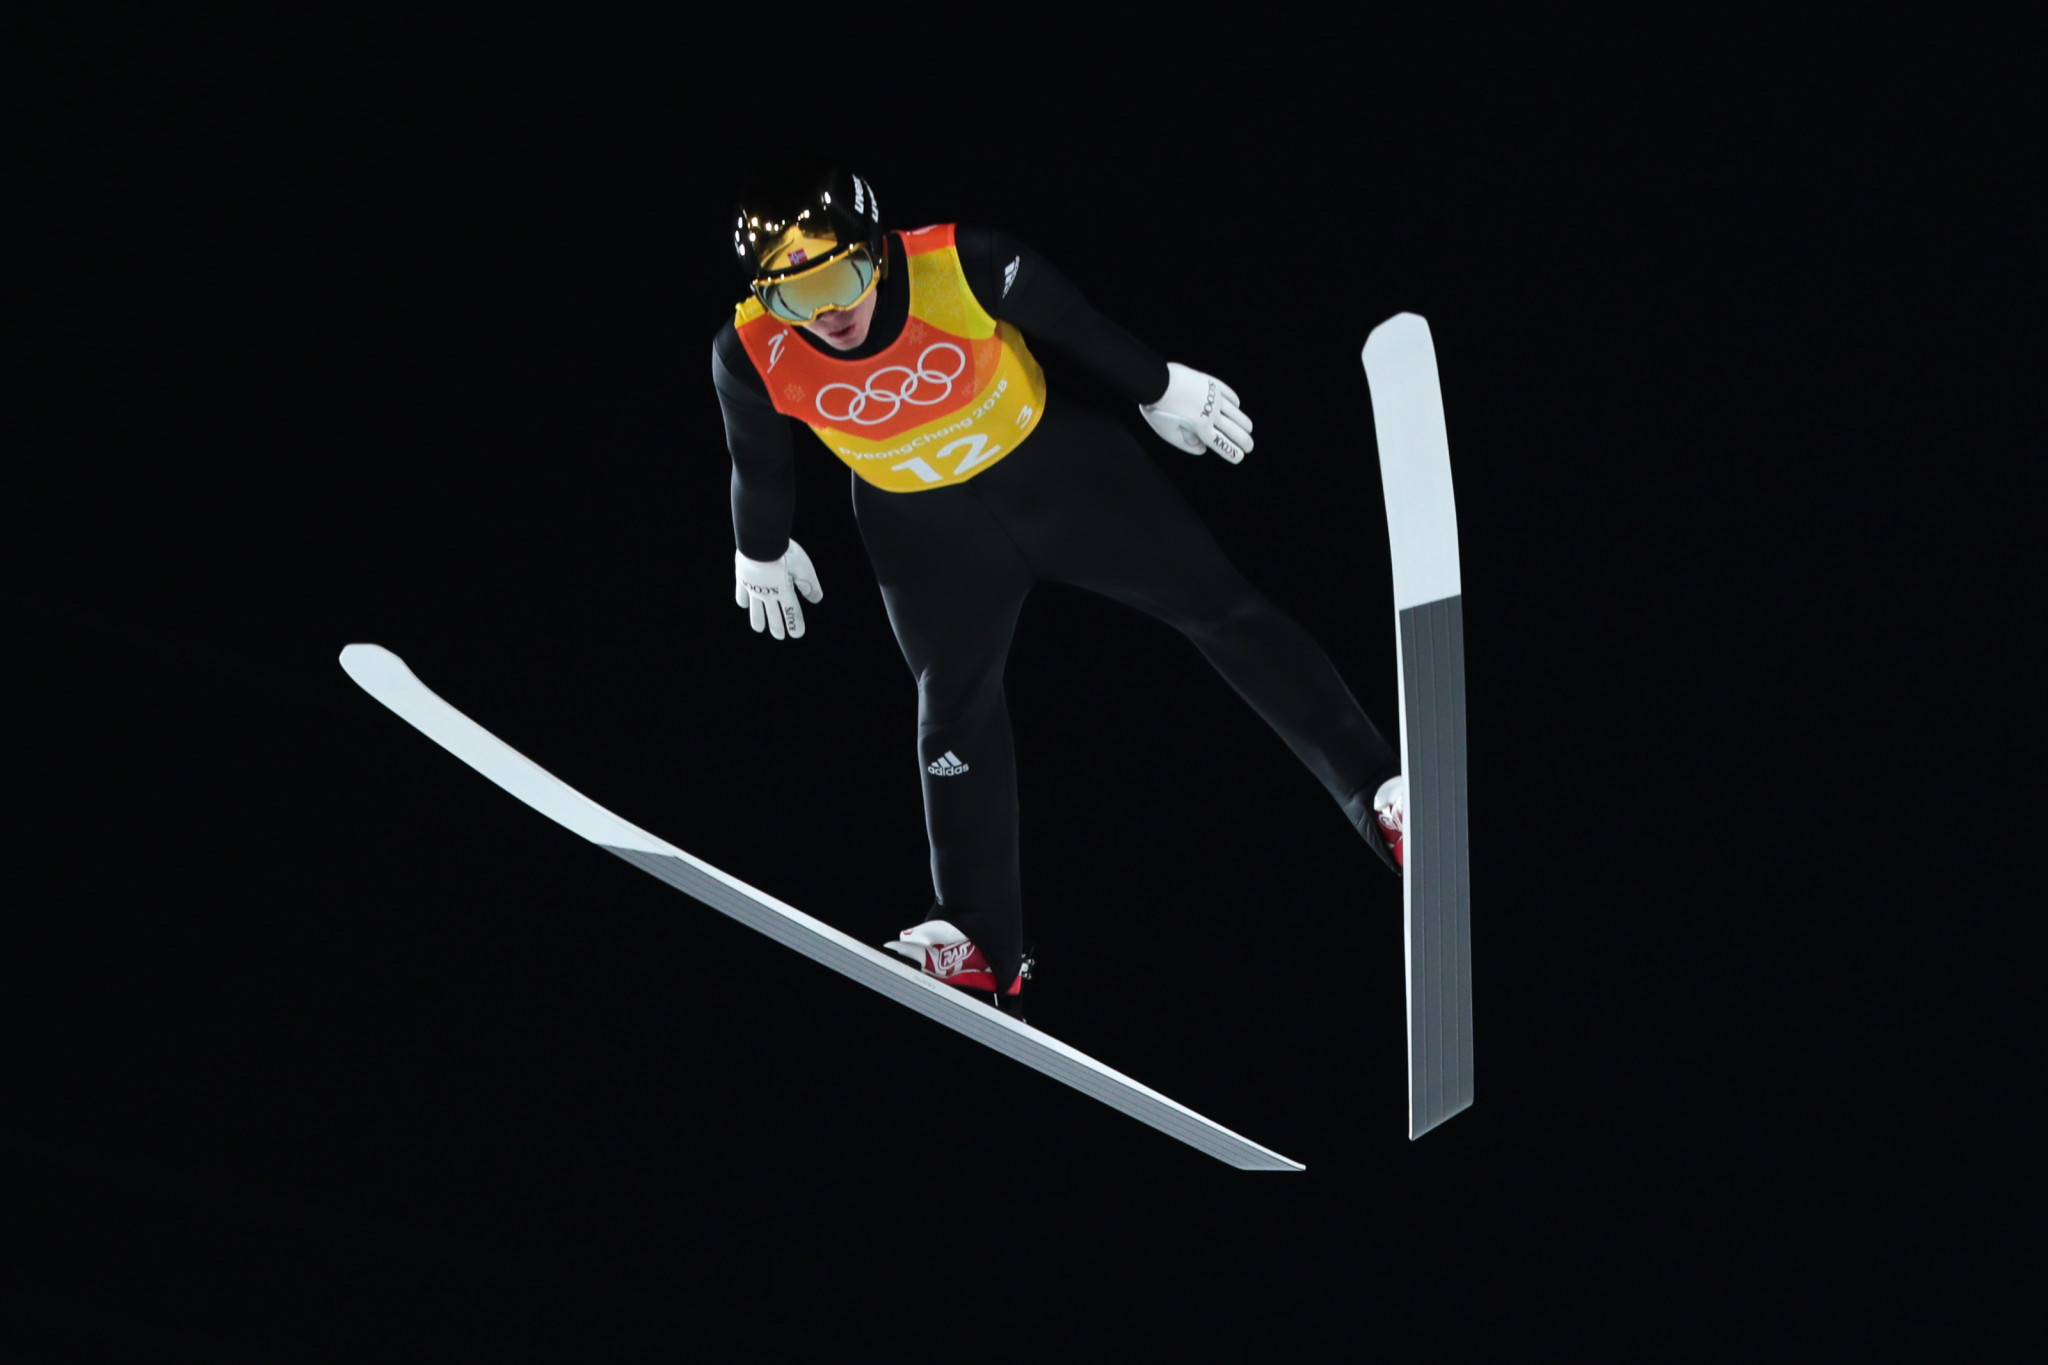 Forfang leads qualifying at Ski Jumping World Cup Finals in Planica